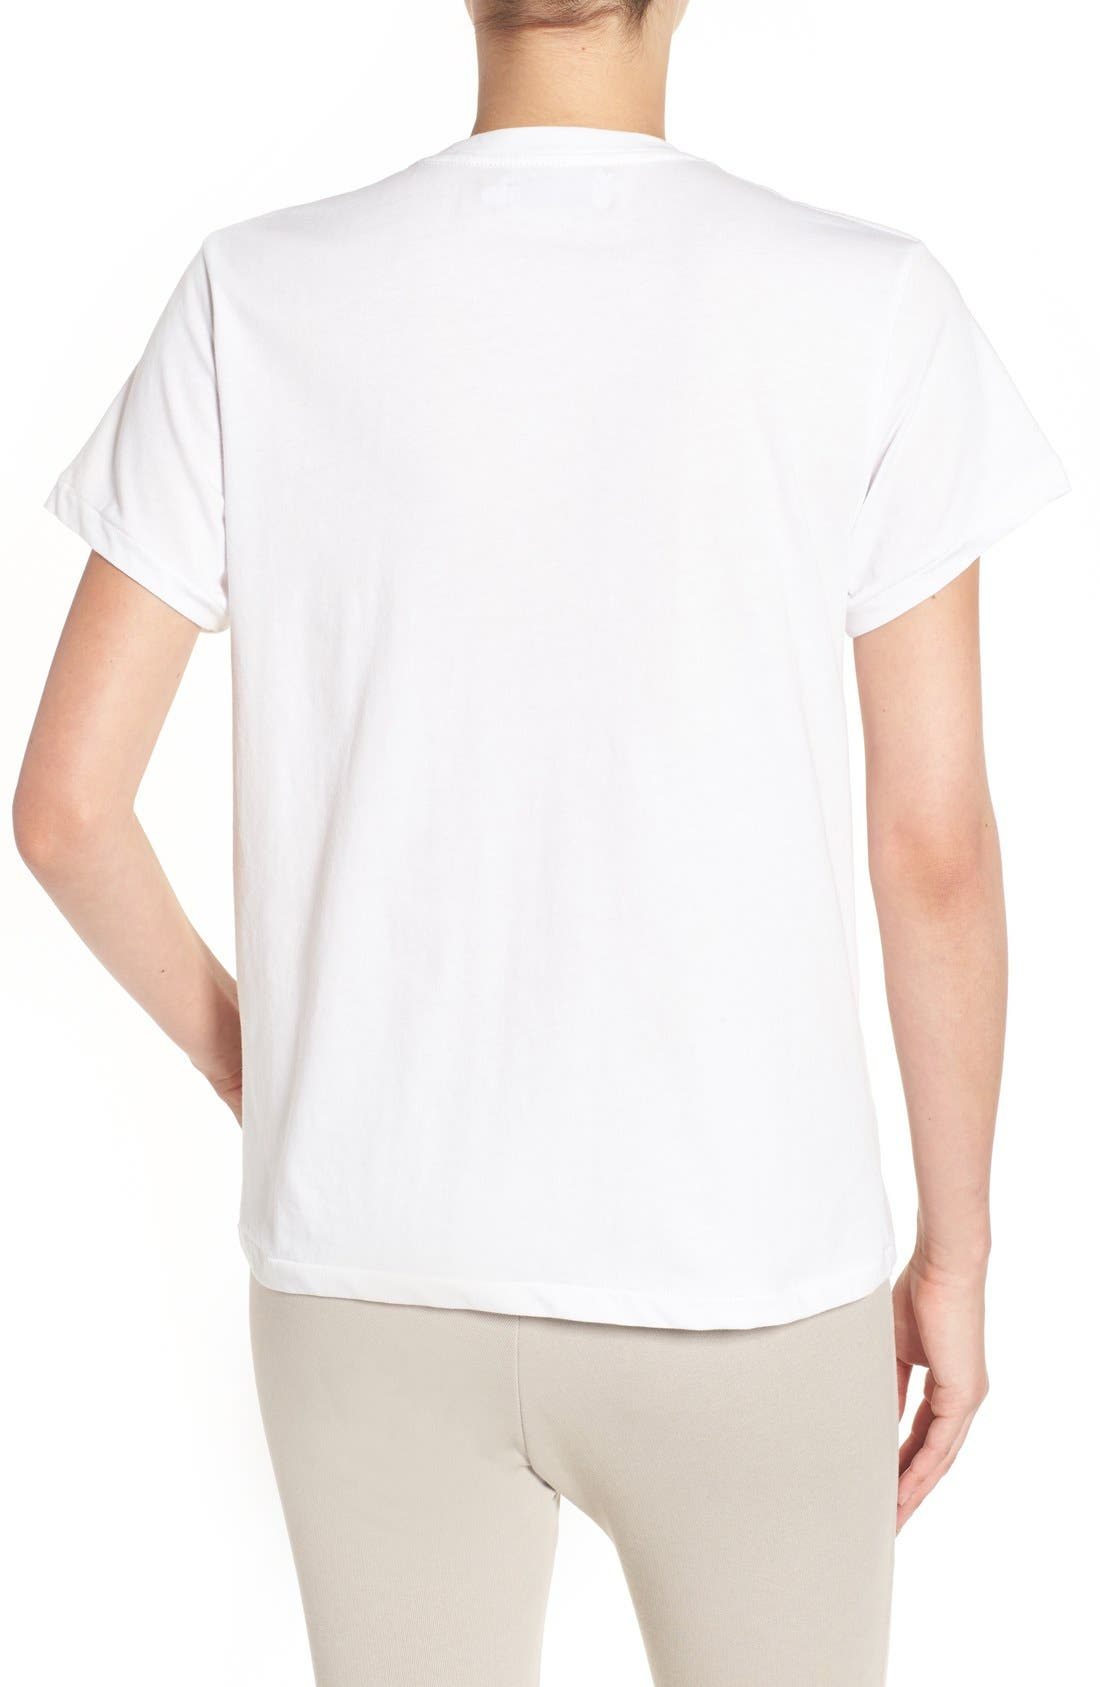 'Lips & Lashes' Graphic Tee,                             Alternate thumbnail 6, color,                             100